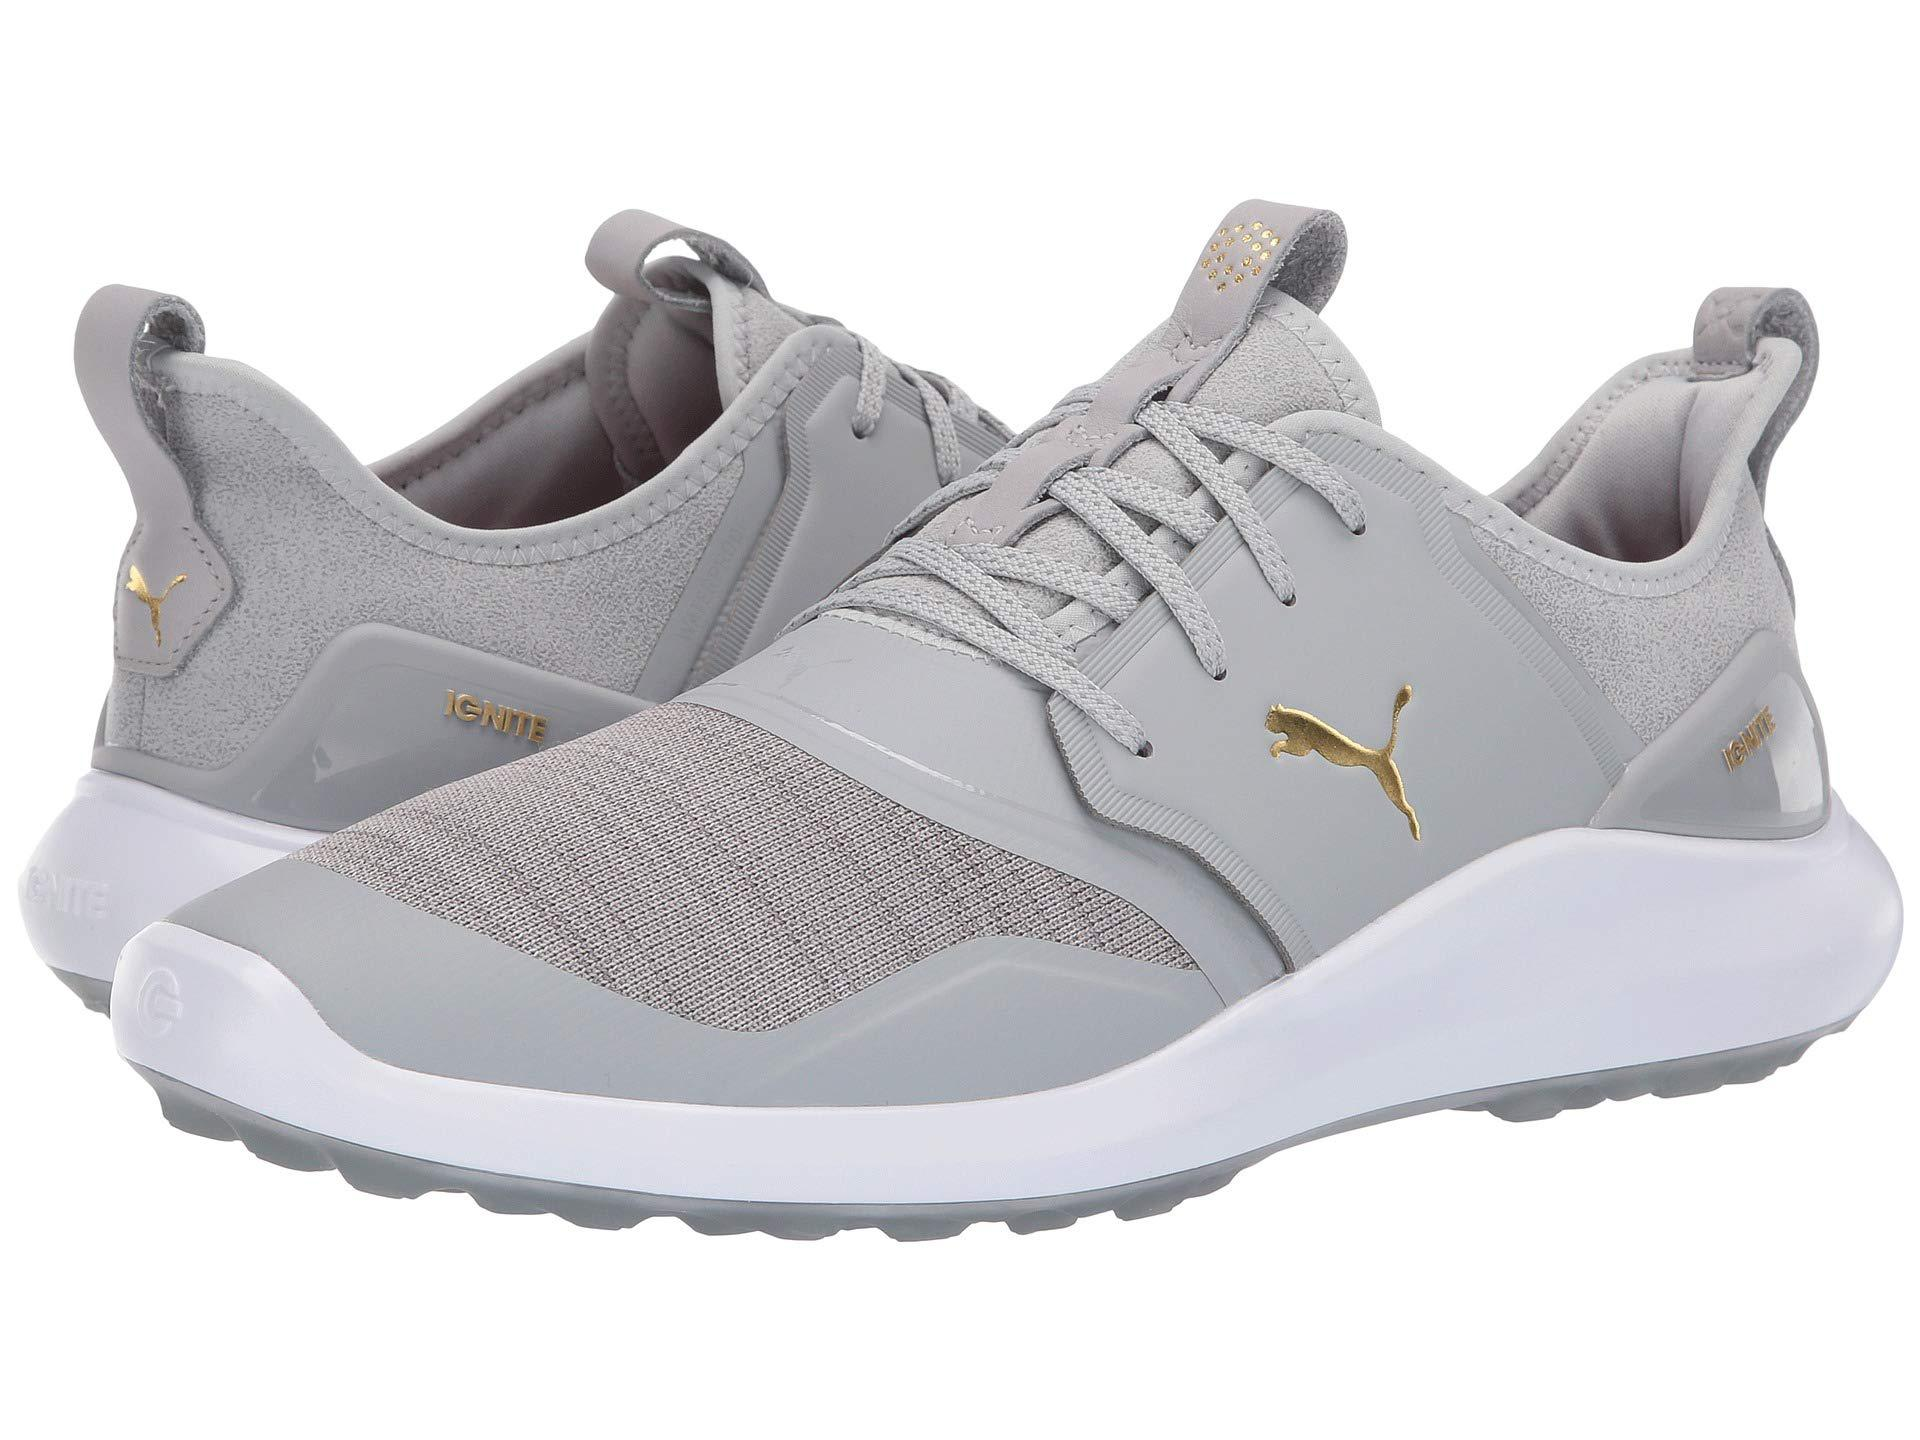 Lyst - PUMA Ignite Nxt (peacoat team Gold white) Men s Golf Shoes in ... da8793f08